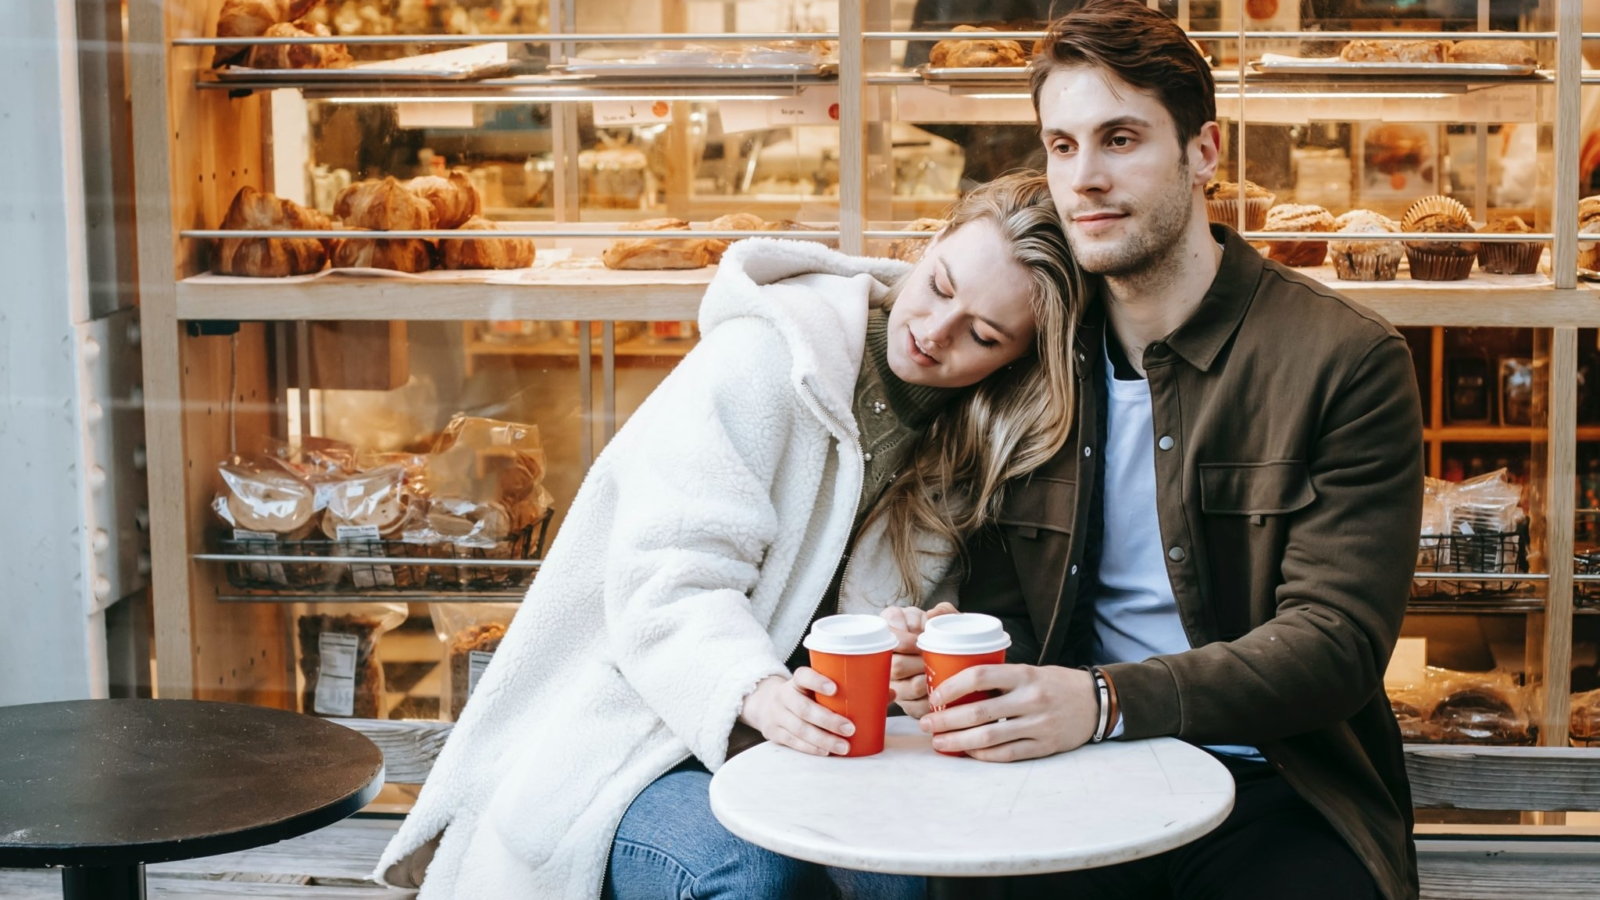 3 dating mindset shifts to get success